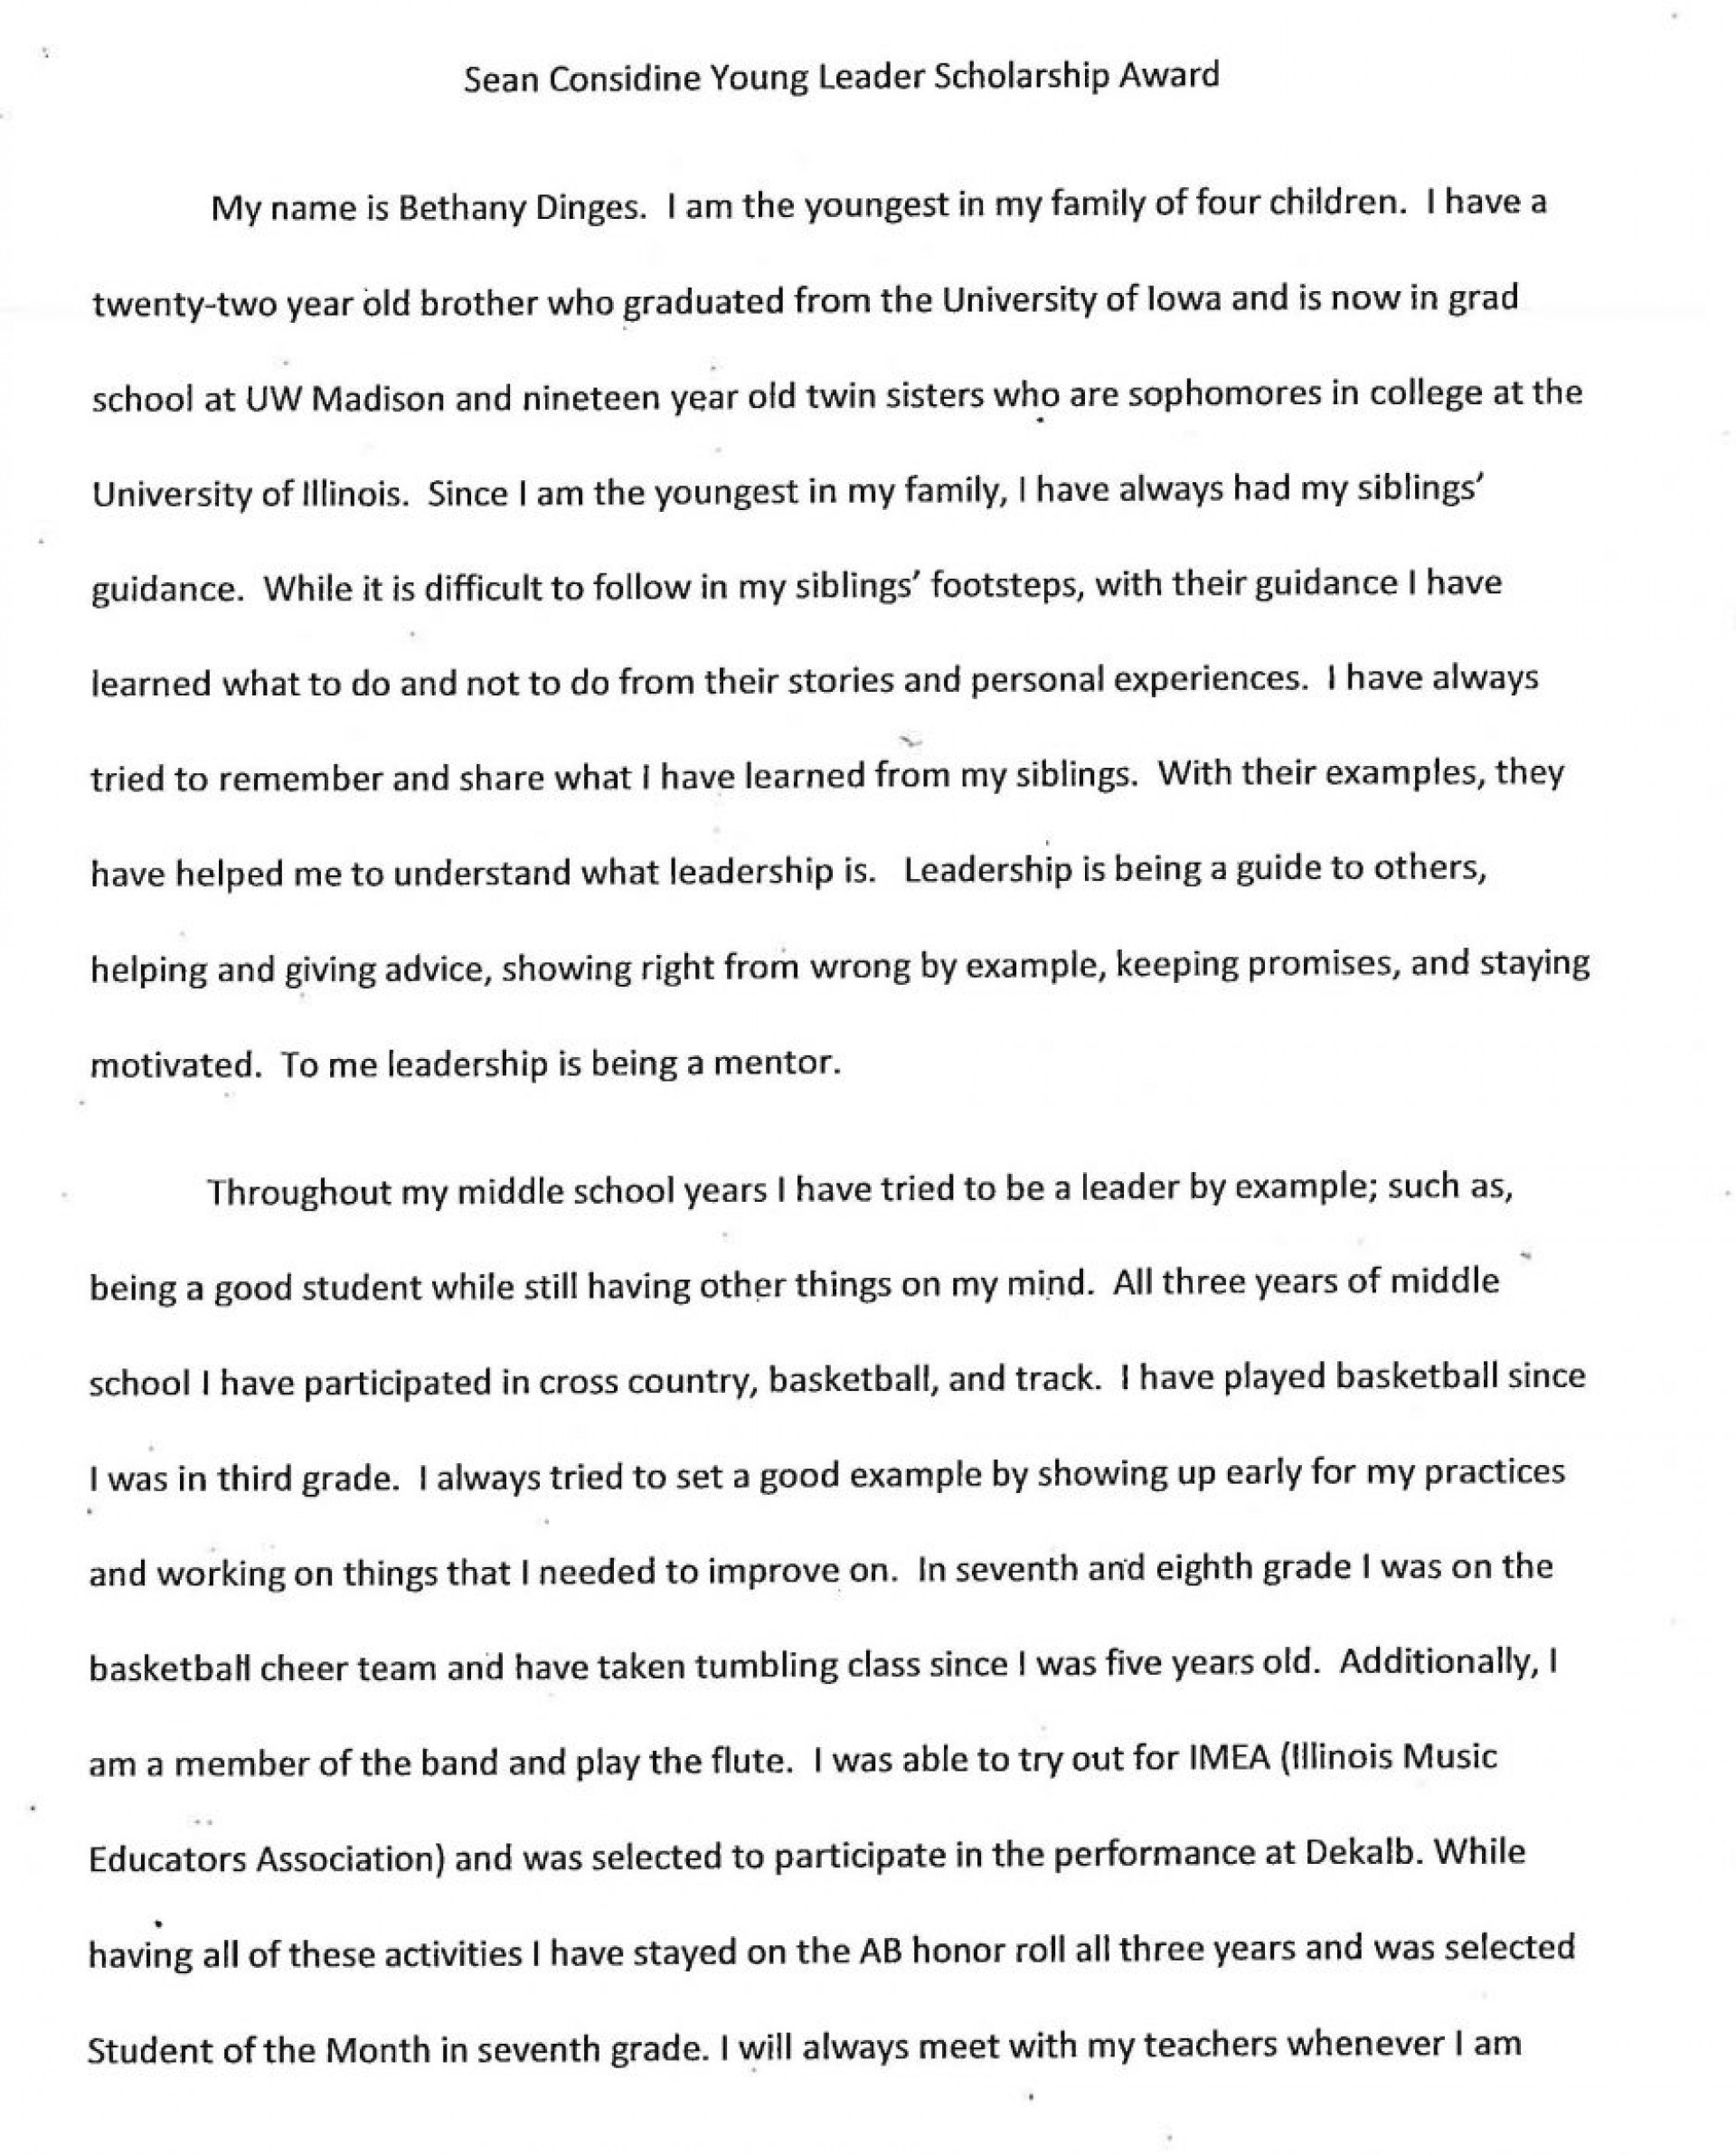 007 Studentuncil Essay Ideas Bethanyletter Page For Treasurer Elections Good Elementary School Election Goals President Examples Writing An Sample Persuasive 3rd Graders Secretary 936x1162 Phenomenal Student Council Rubric Conclusion Example 1920